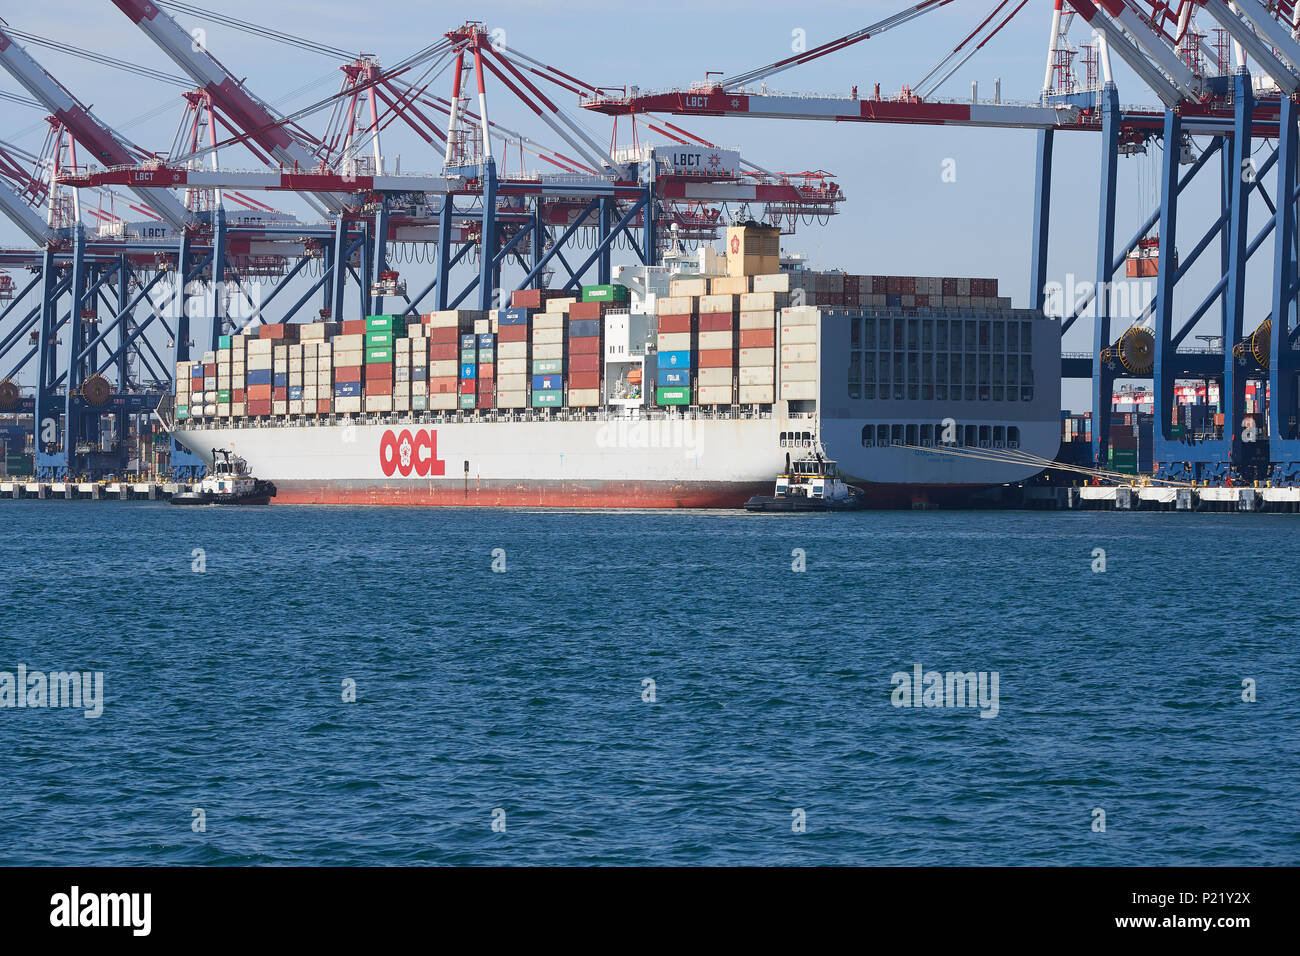 Container Ship, OOCL LONDON, About To Depart The Long Beach Container Terminal. Tugs Waiting Fore And Aft. Port Of Long Beach, California, USA. - Stock Image